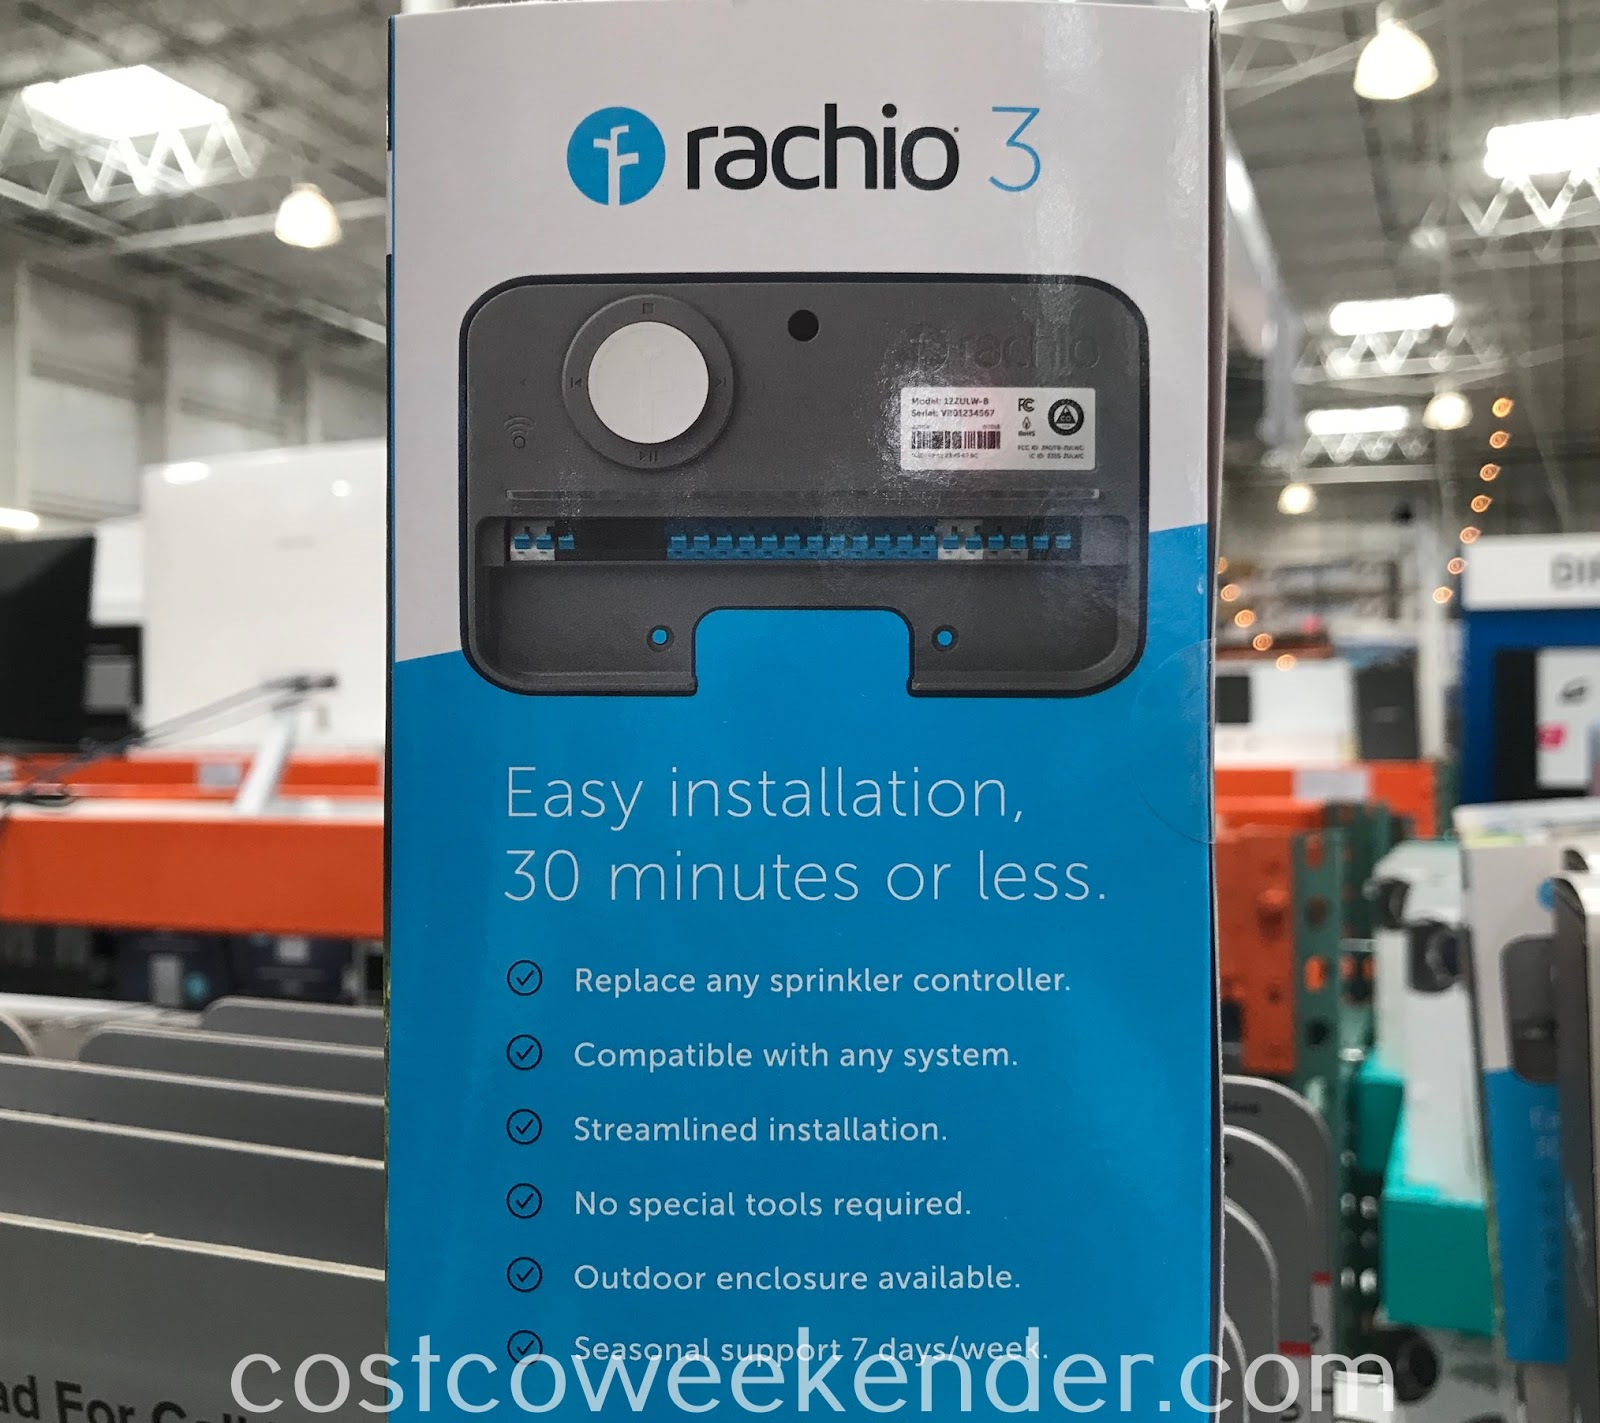 Rachio 3 Smart Sprinkler Controller: great for any lawn or garden